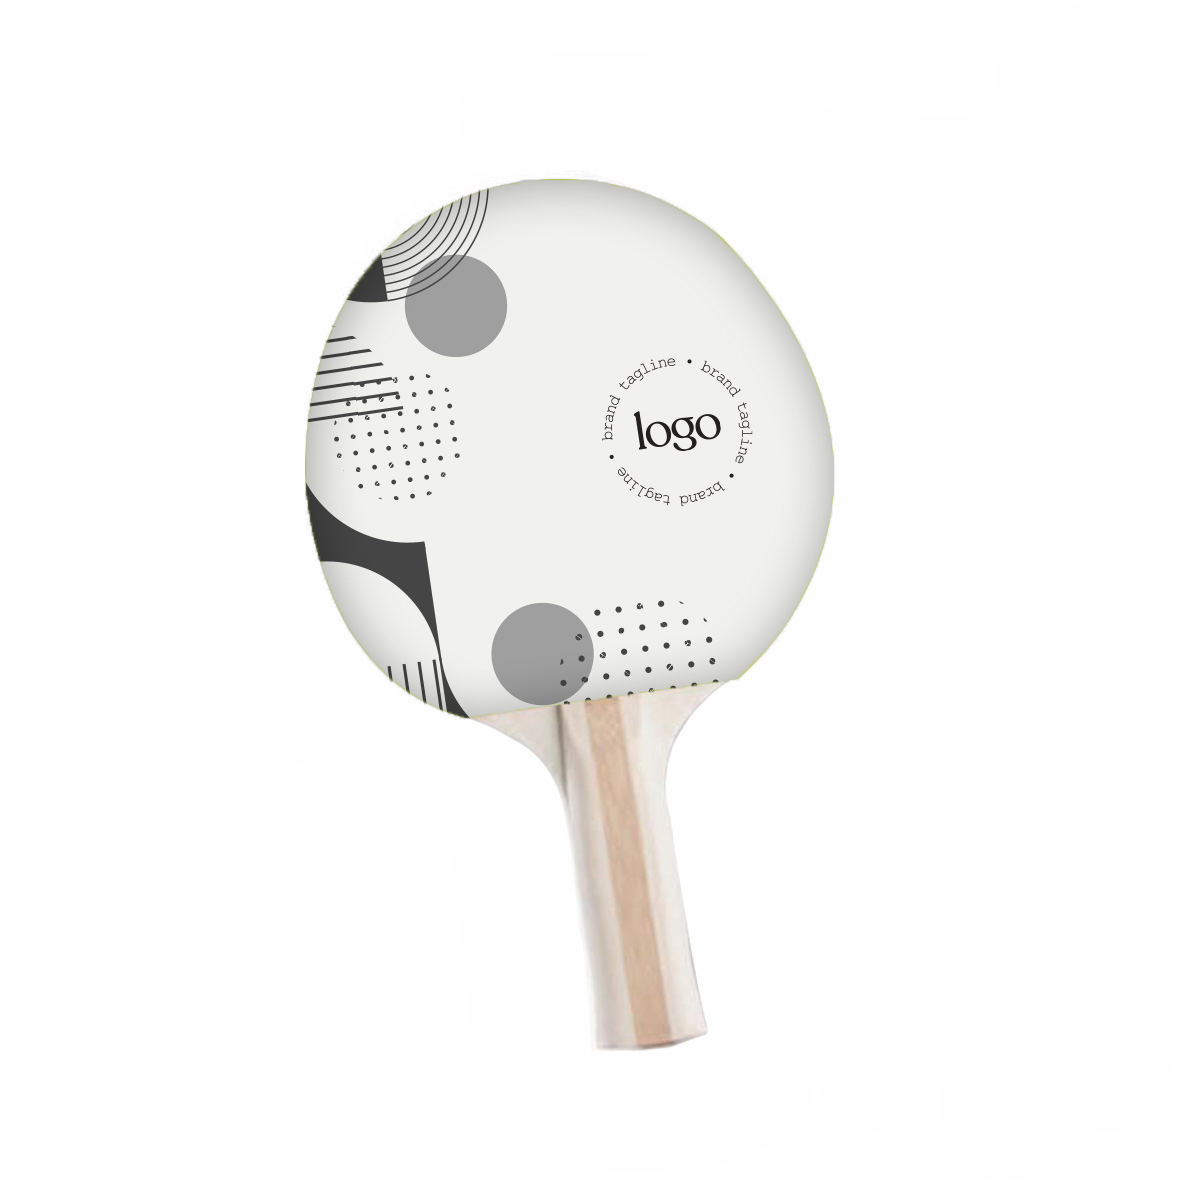 243698 premium ping pong paddle full color one side